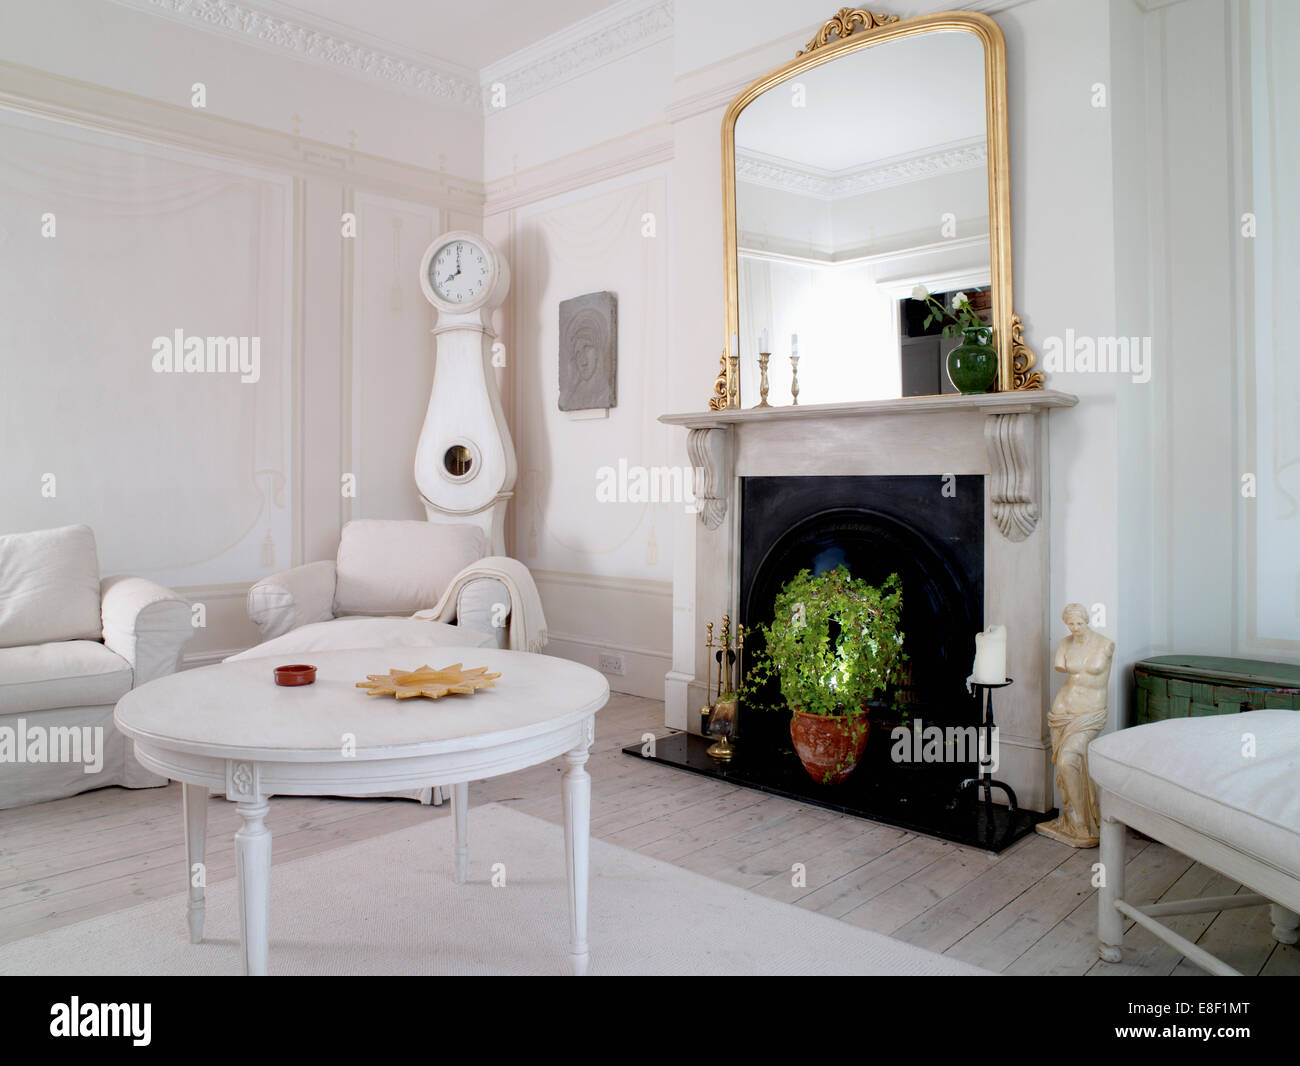 White Painted Coffee Table In Front Of Marble Fireplace With Large